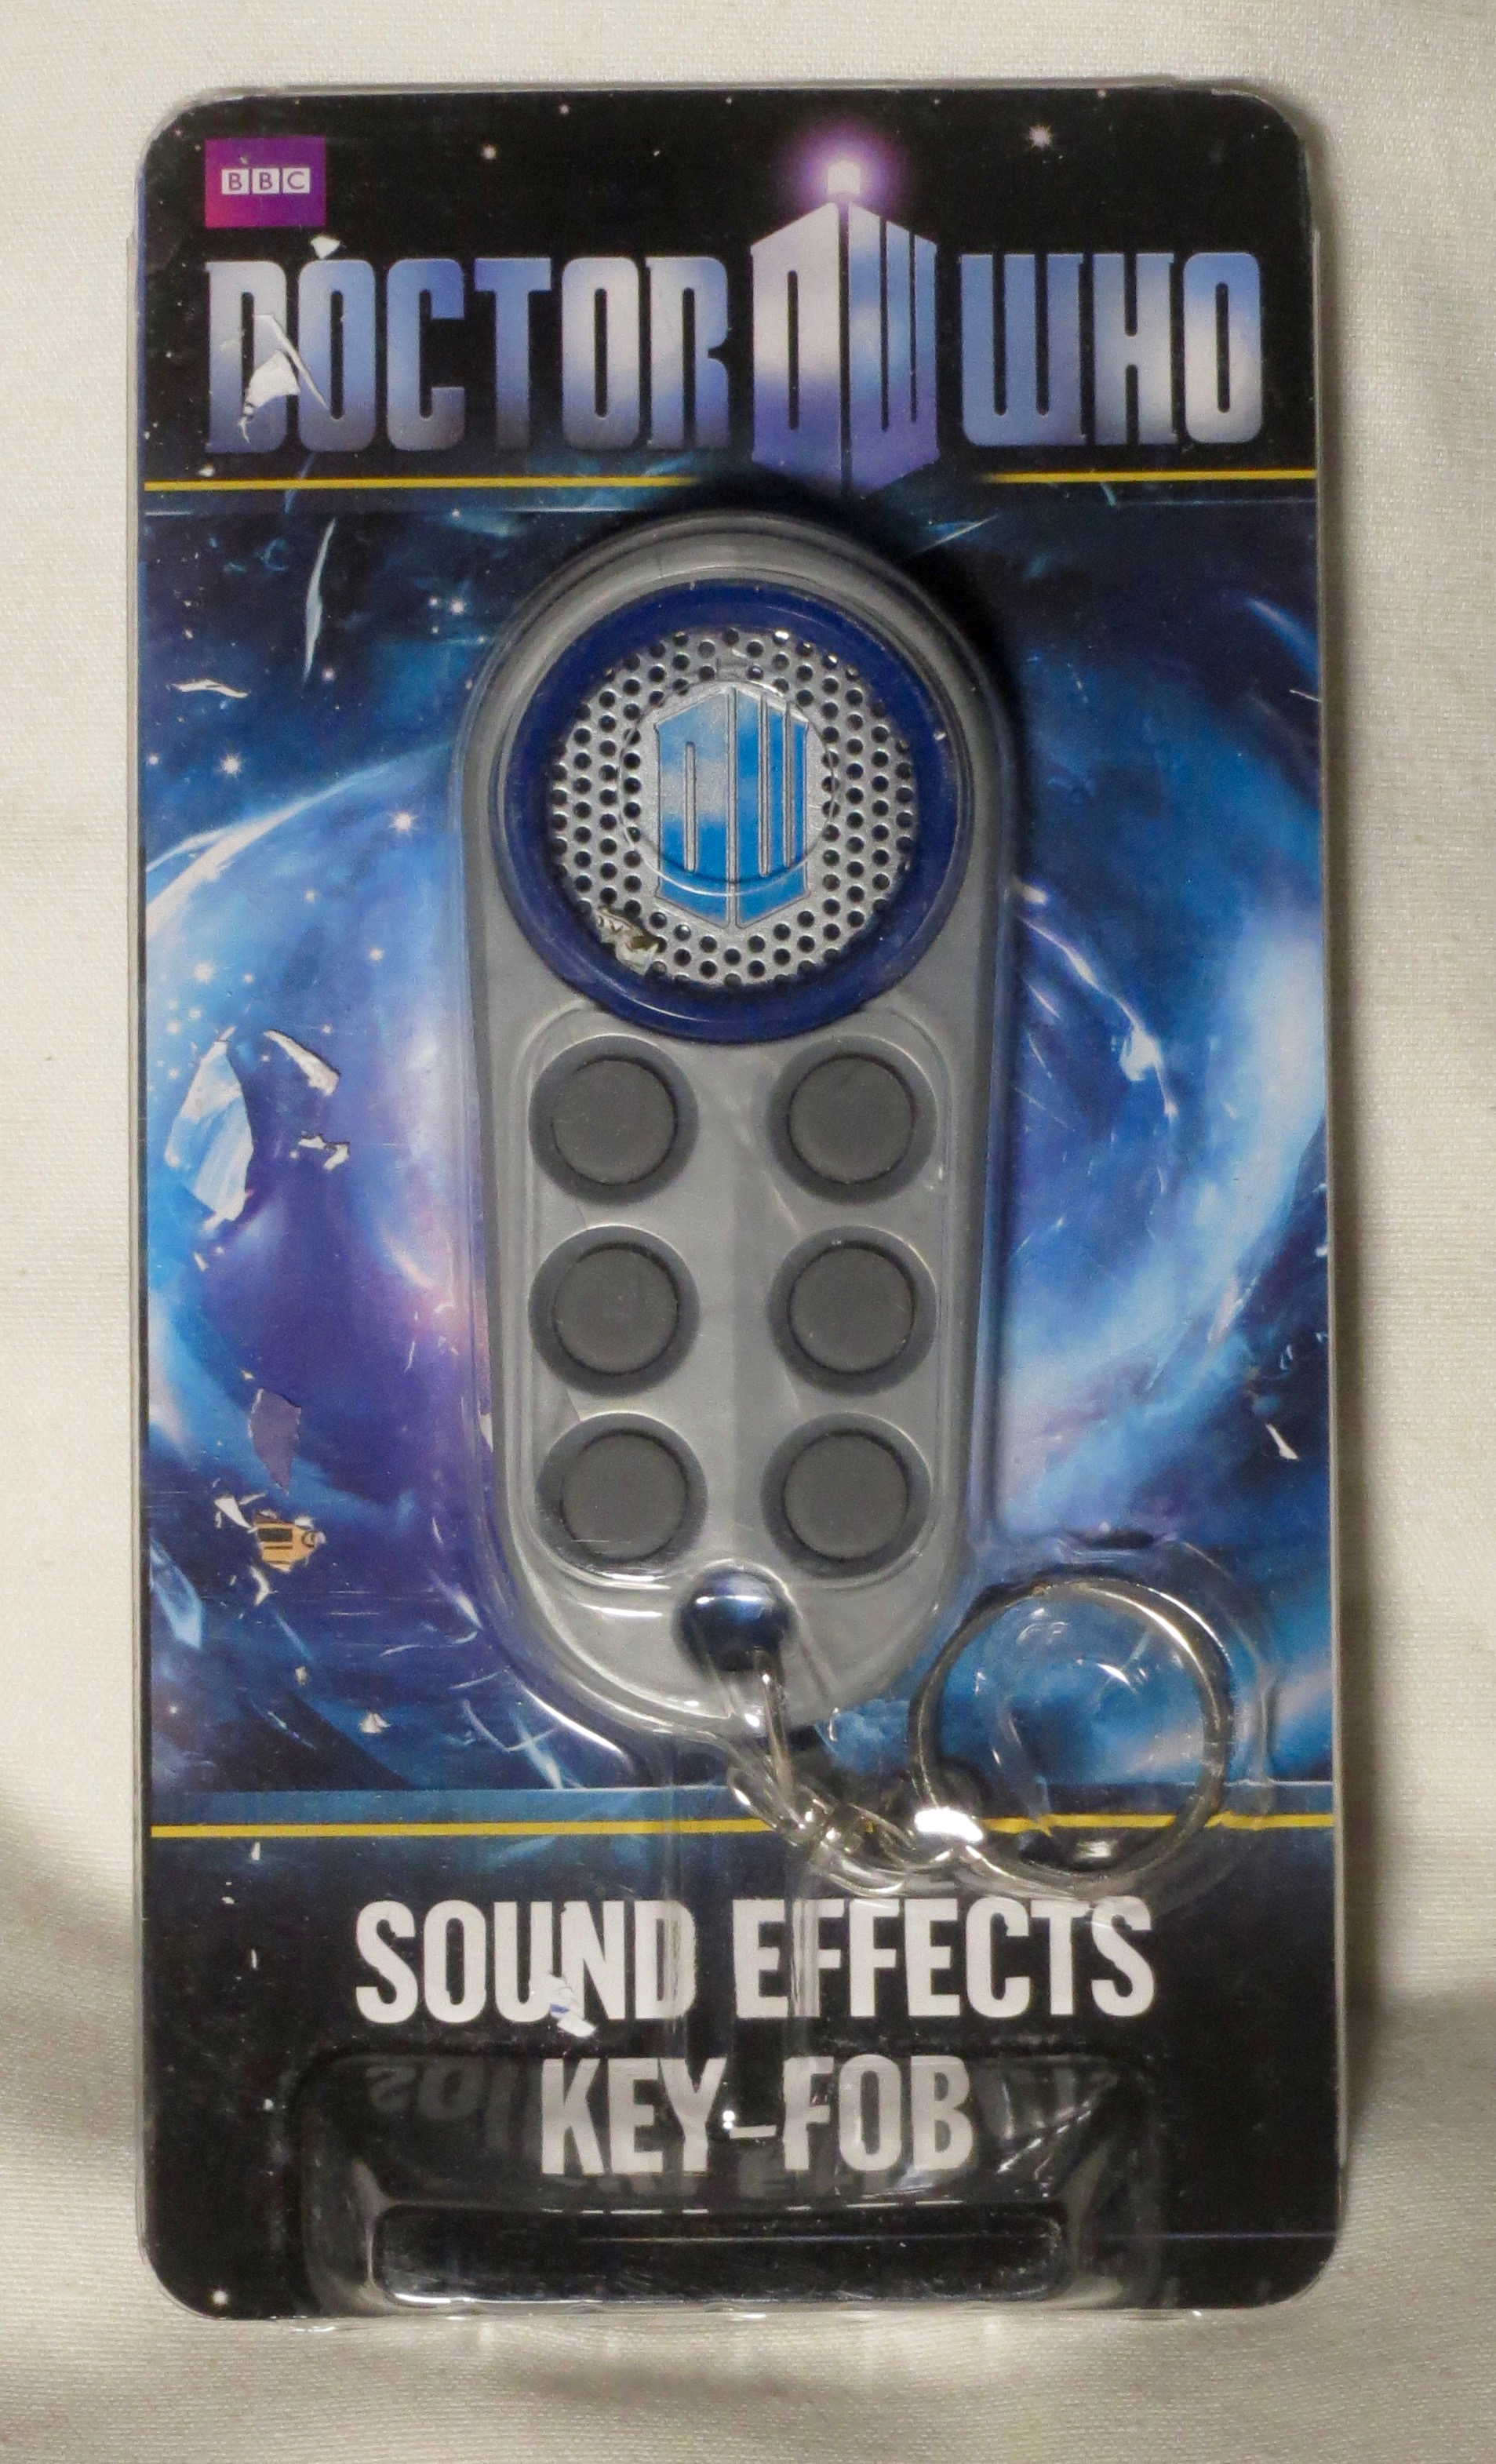 Dr Who: Official BBC Sound Effects Keyfob Keyring (2009)